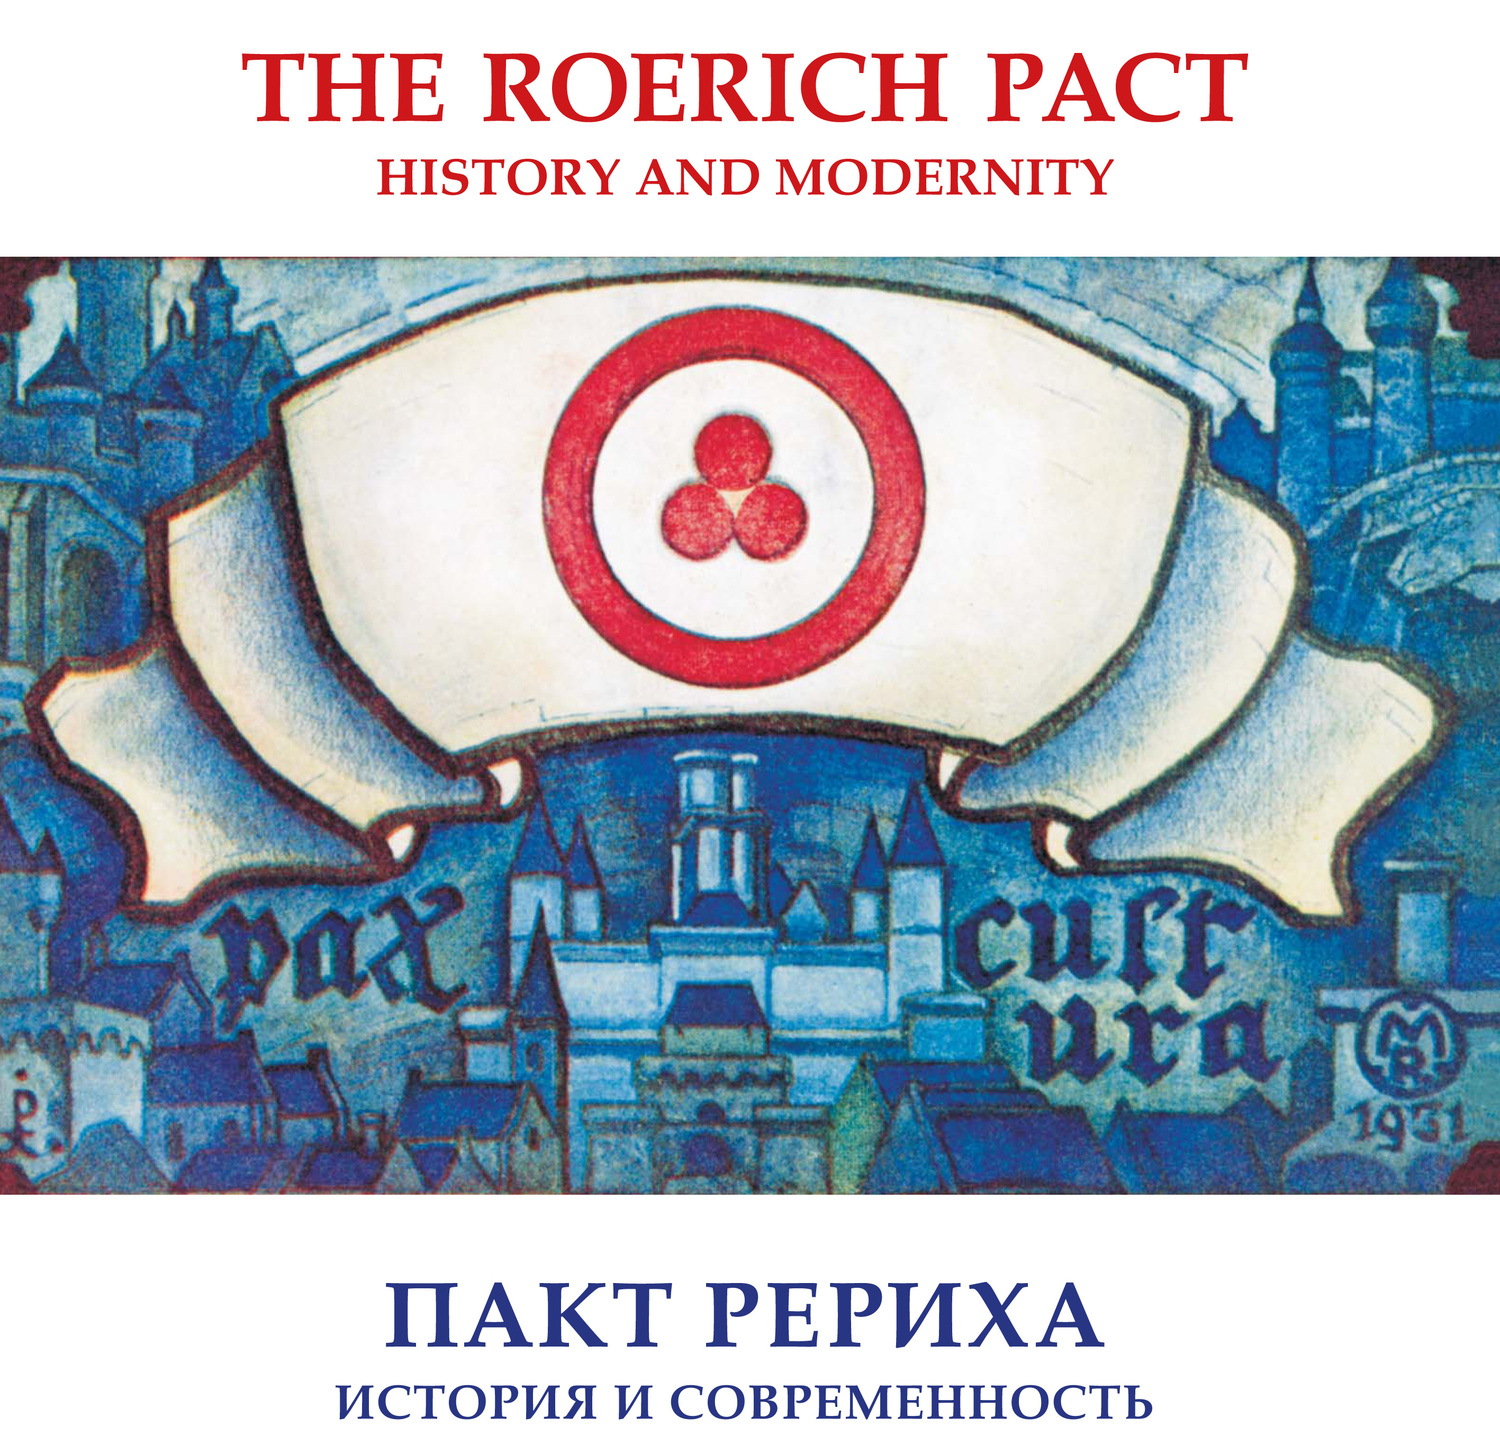 Коллектив авторов The Roerich pact. History and modernity. Catalogue of the Exhibition (National Academy of Art, New Delhi)